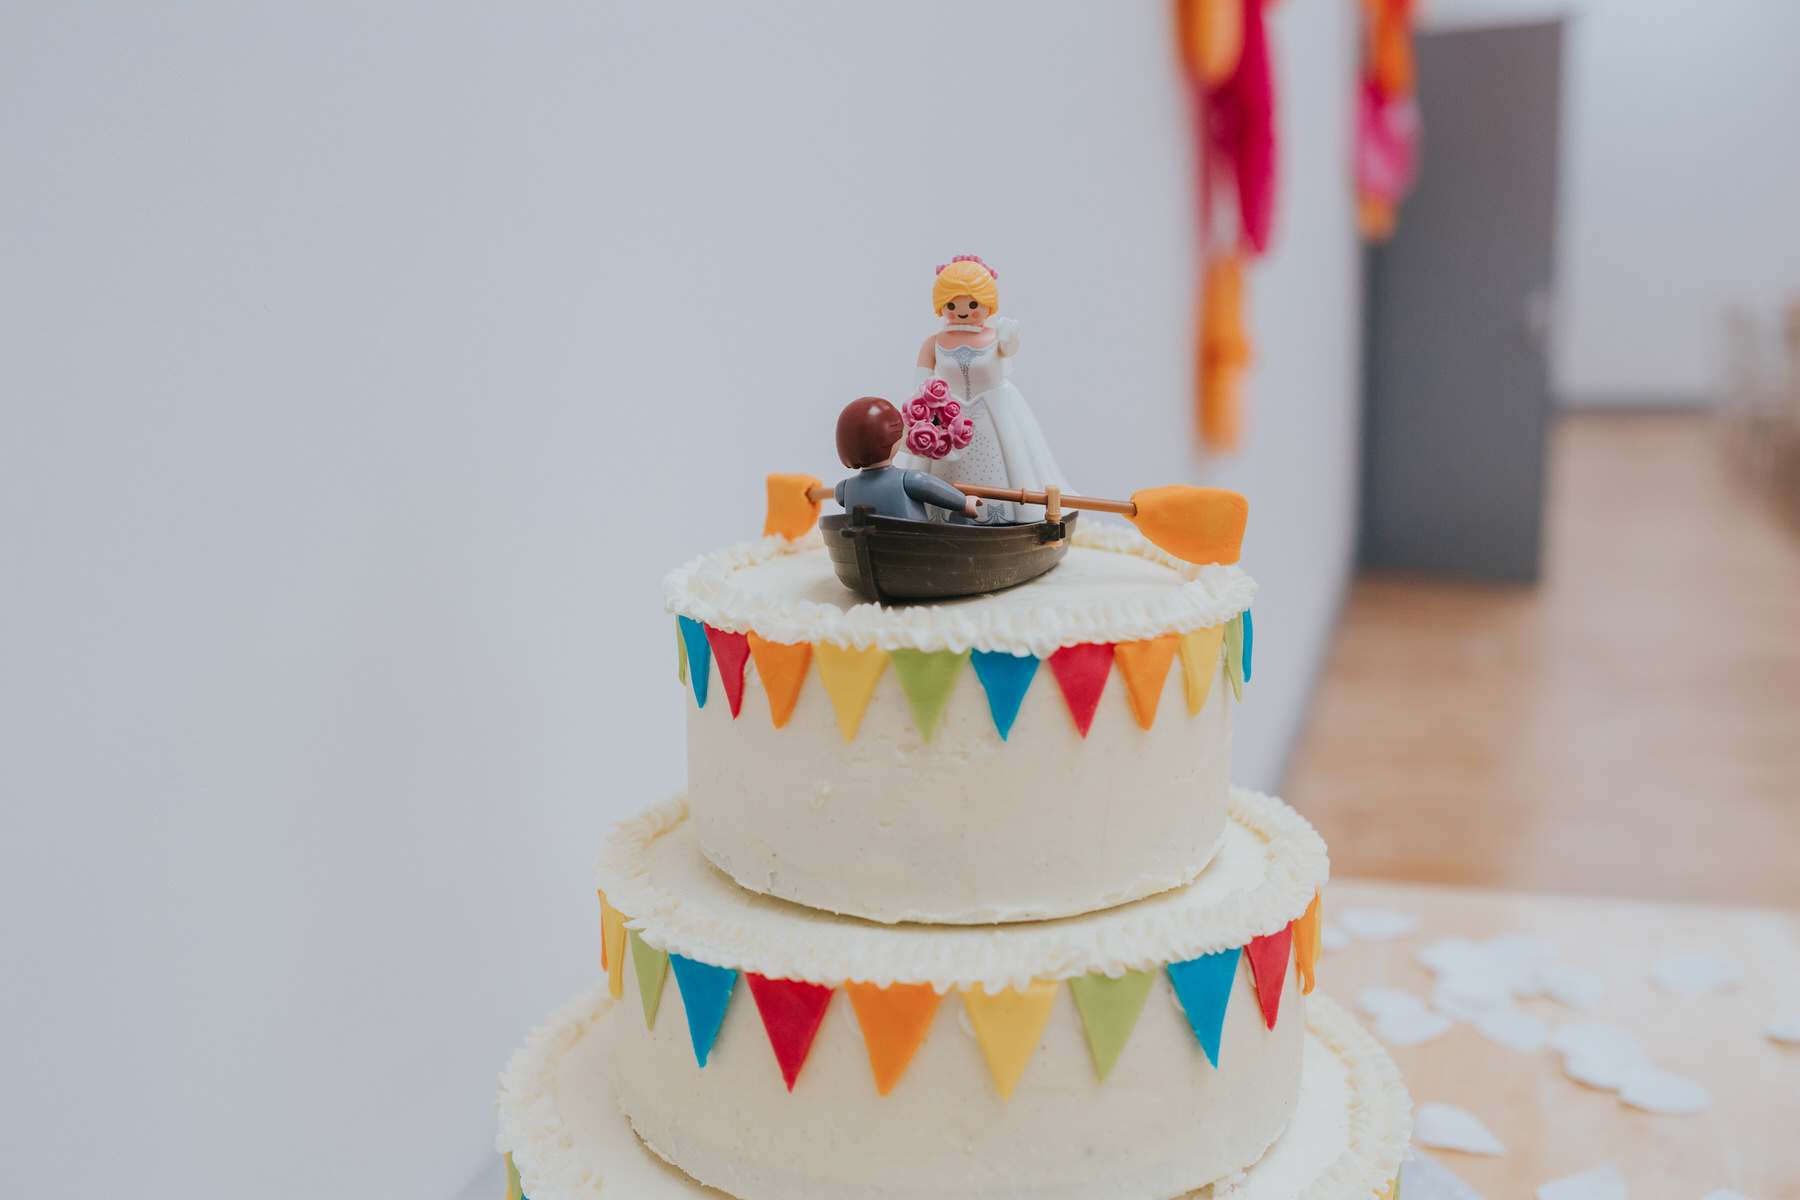 Rowing themed wedding cake with colourful flags lego bride groom figurines.jpg